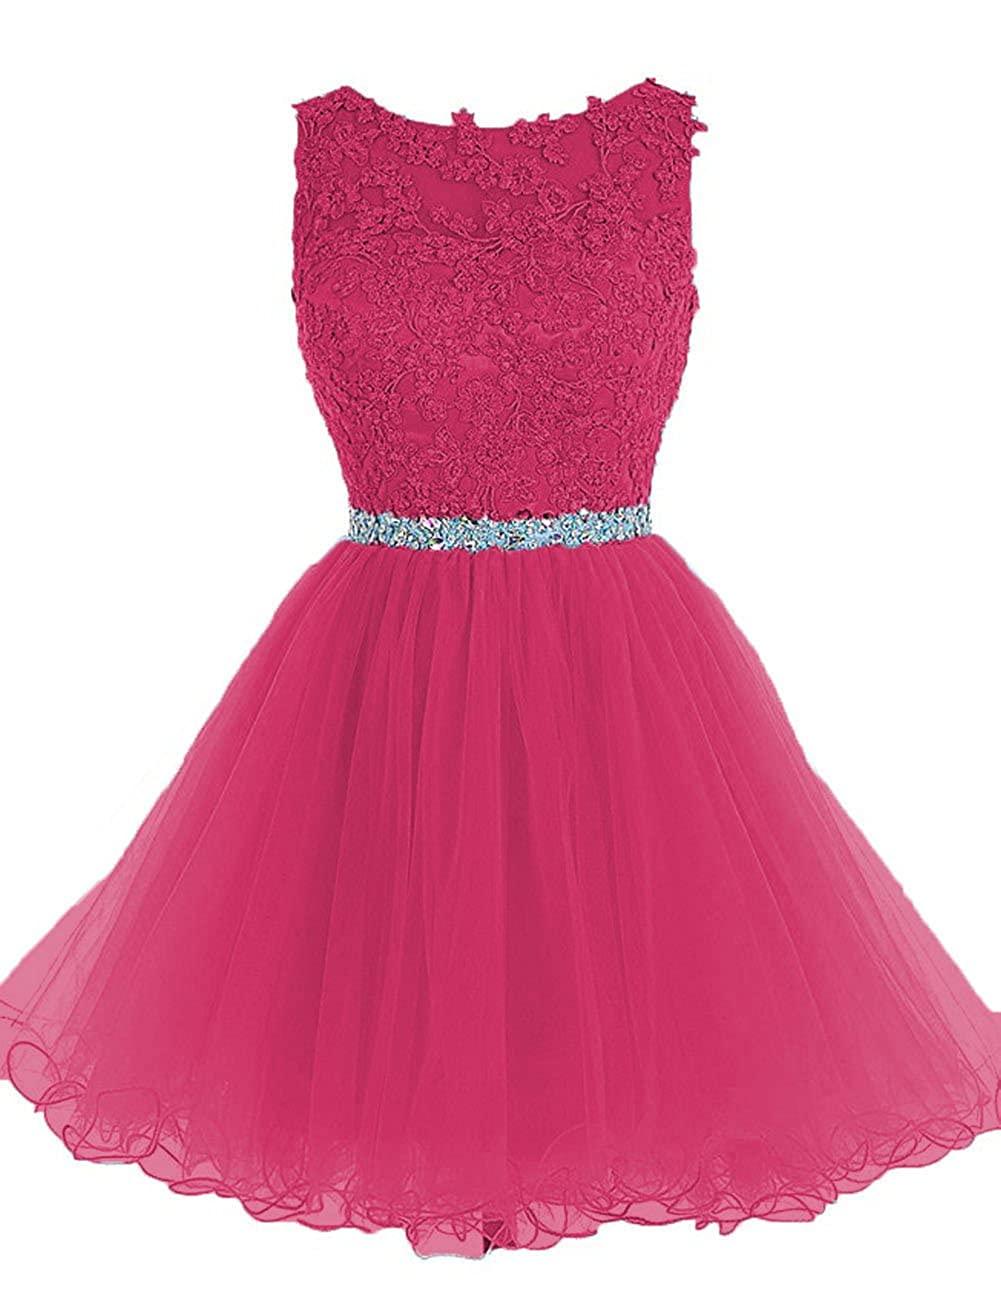 Cdress Beaded Applique Short Prom Homecoming Dresses Tulle Party Evening Gowns CE118